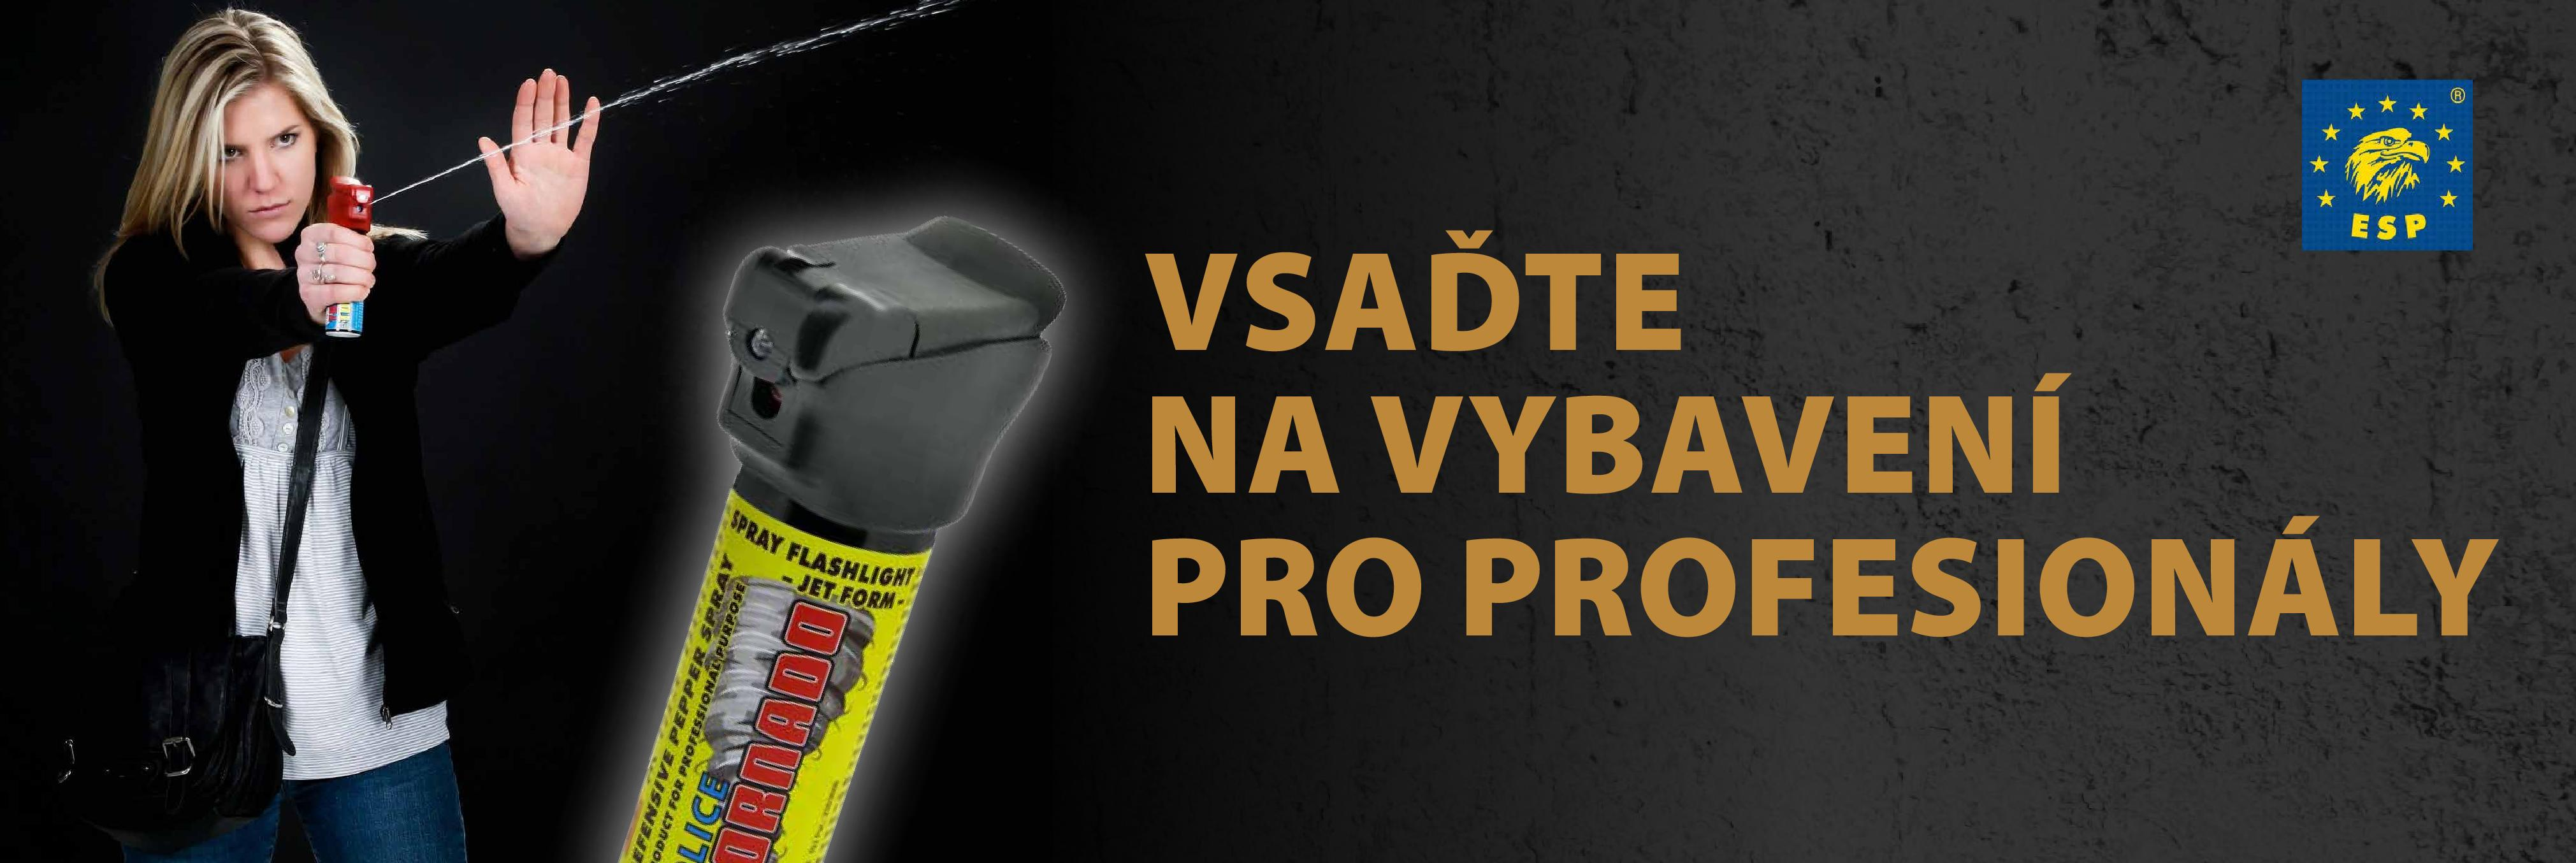 Euro Security Products - Kravmagashop.cz